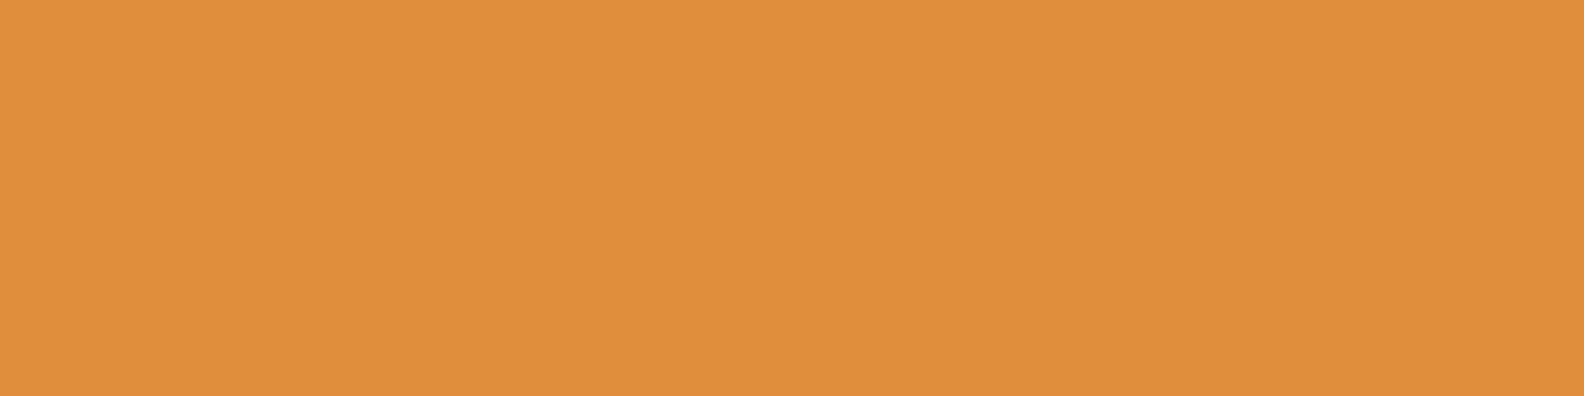 1584x396 Tigers Eye Solid Color Background